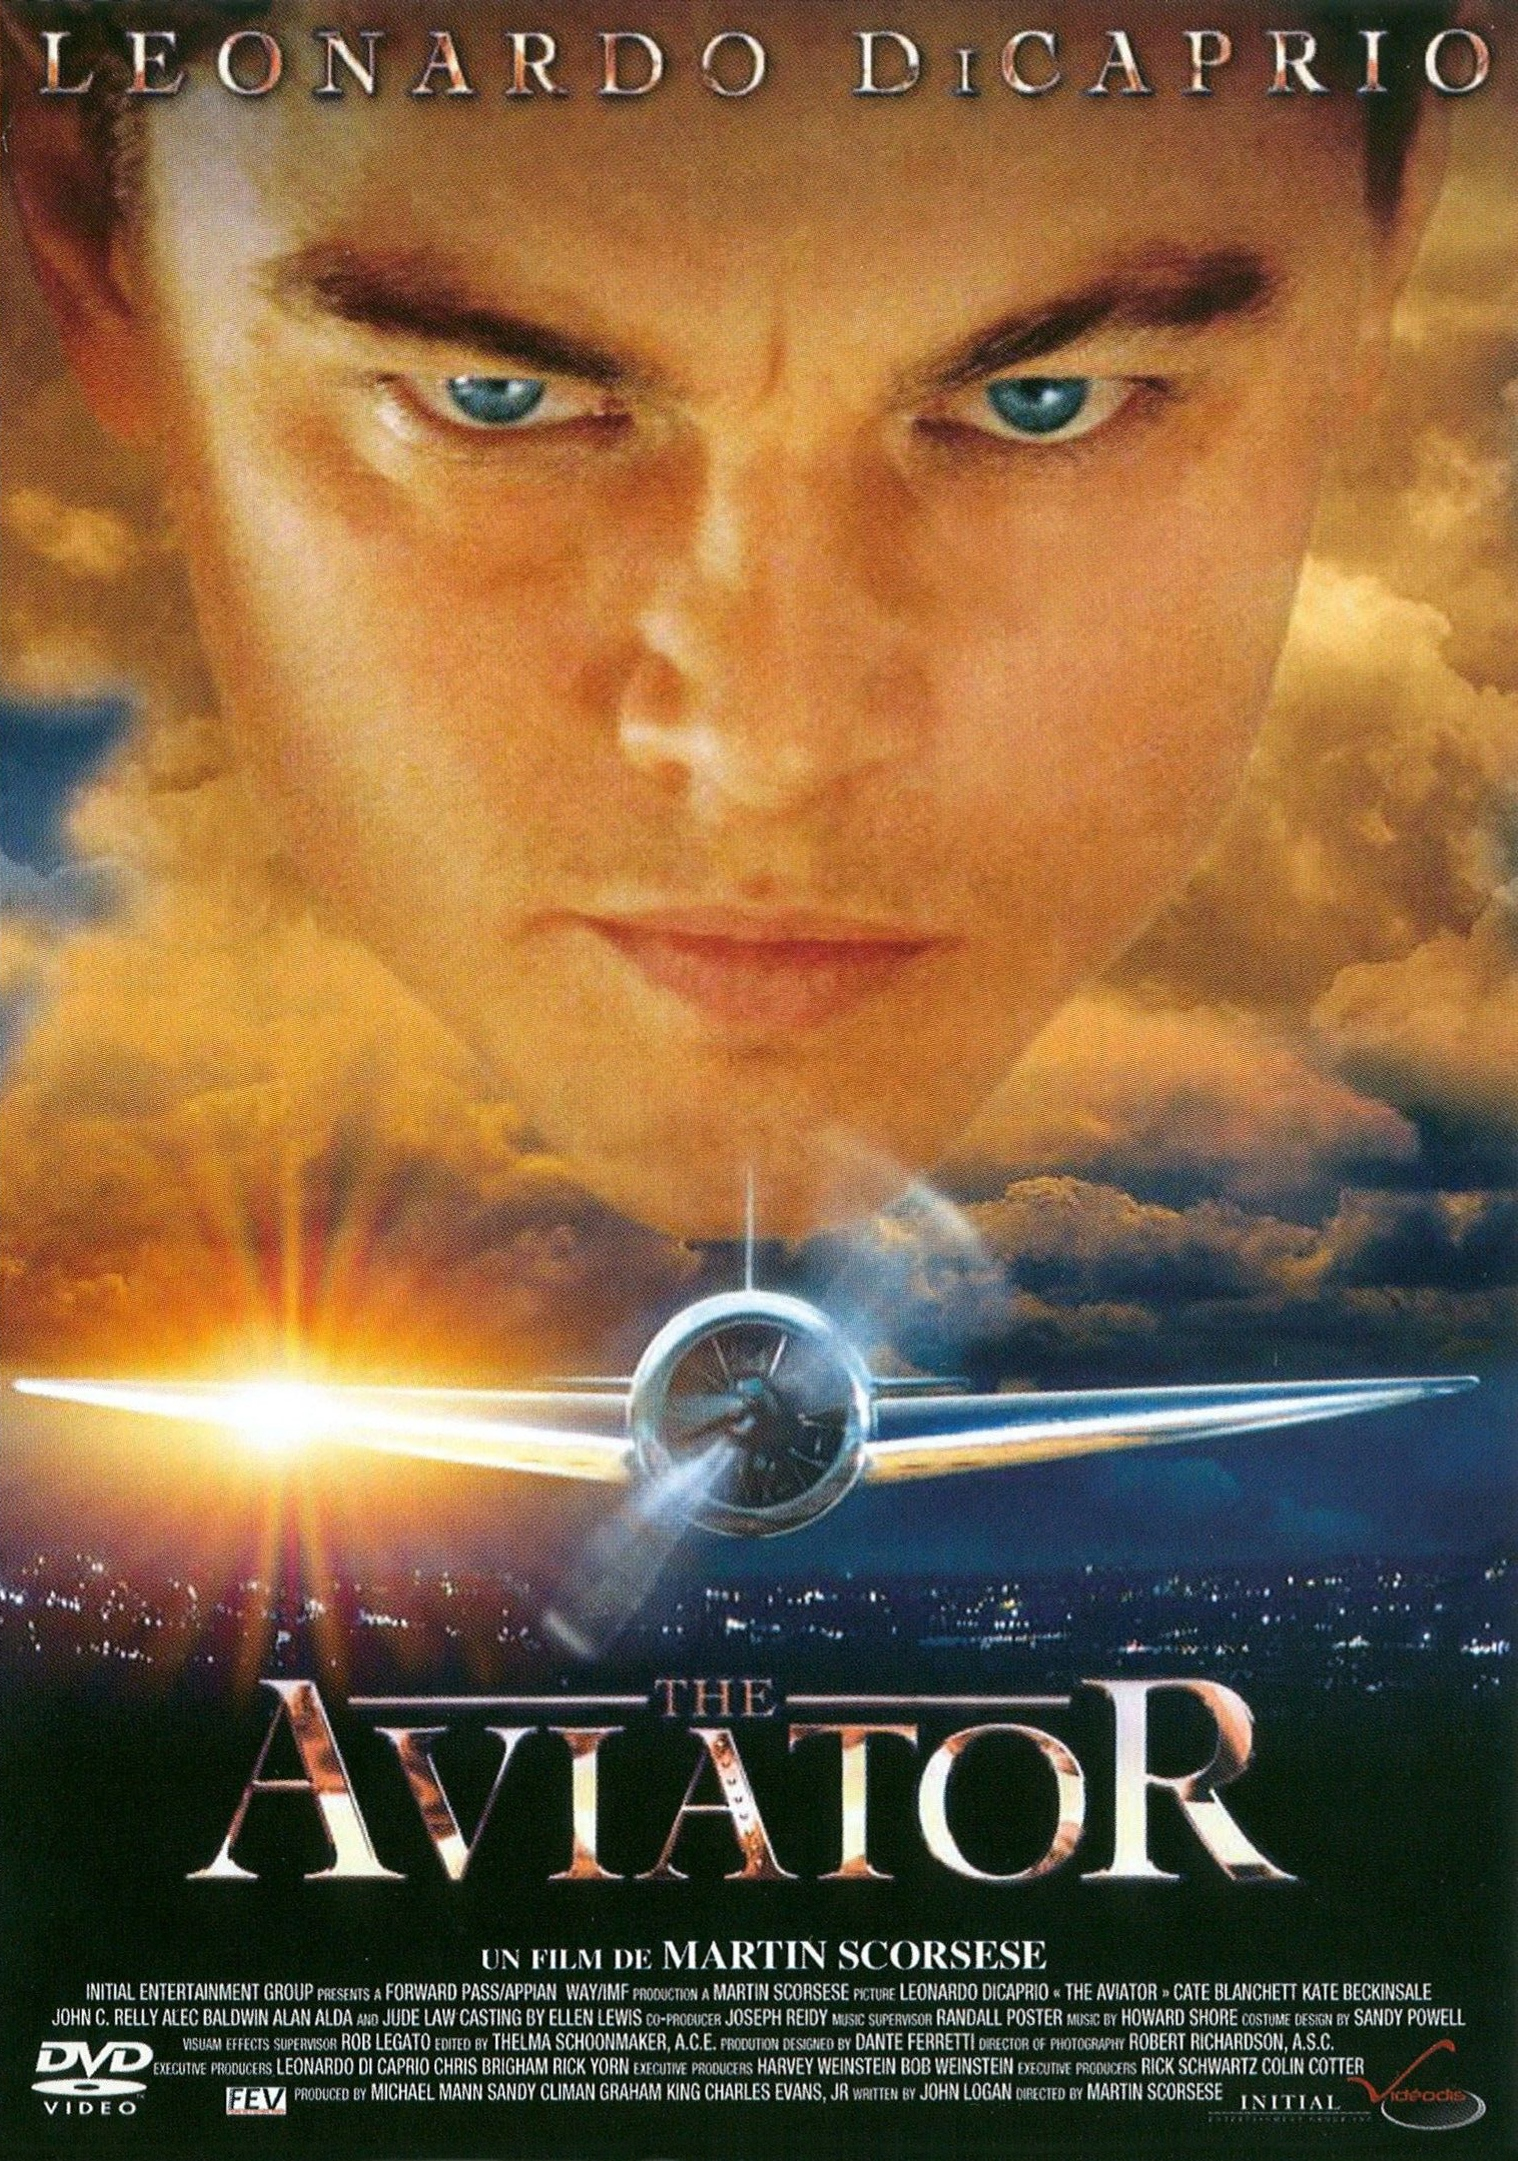 The Aviator (2004) - watch full hd streaming movie online free